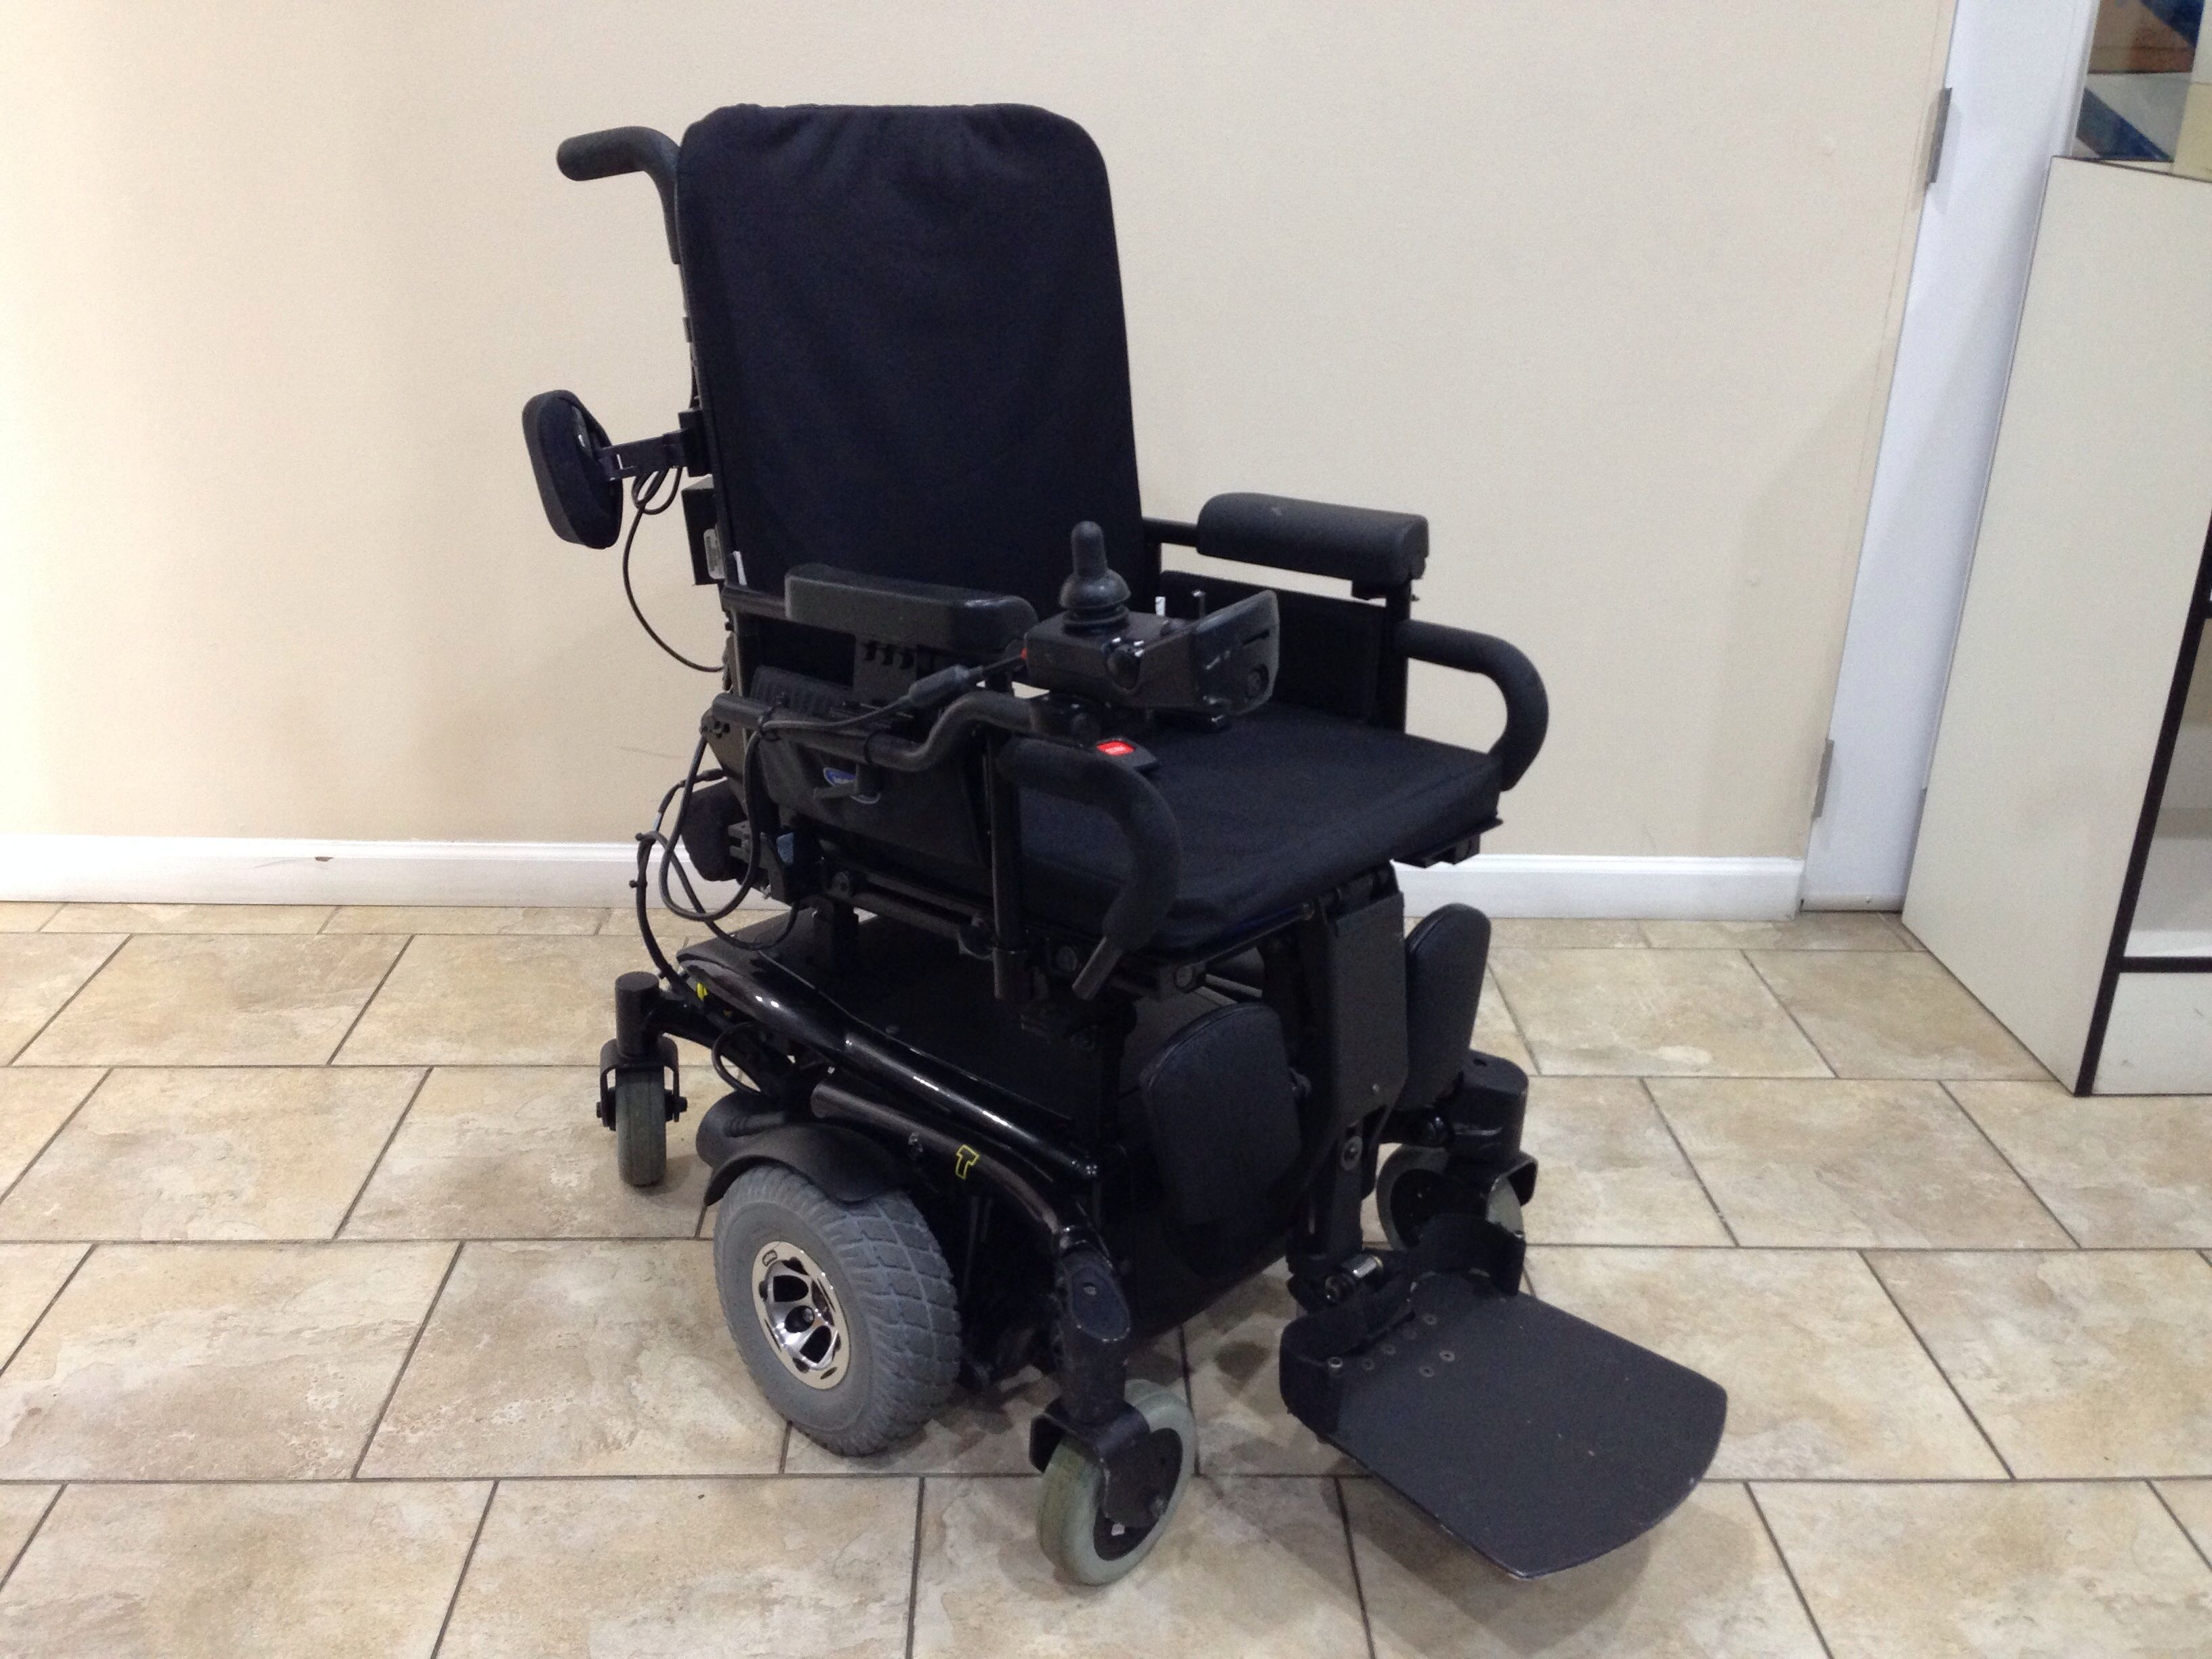 instructions for wheelchair use